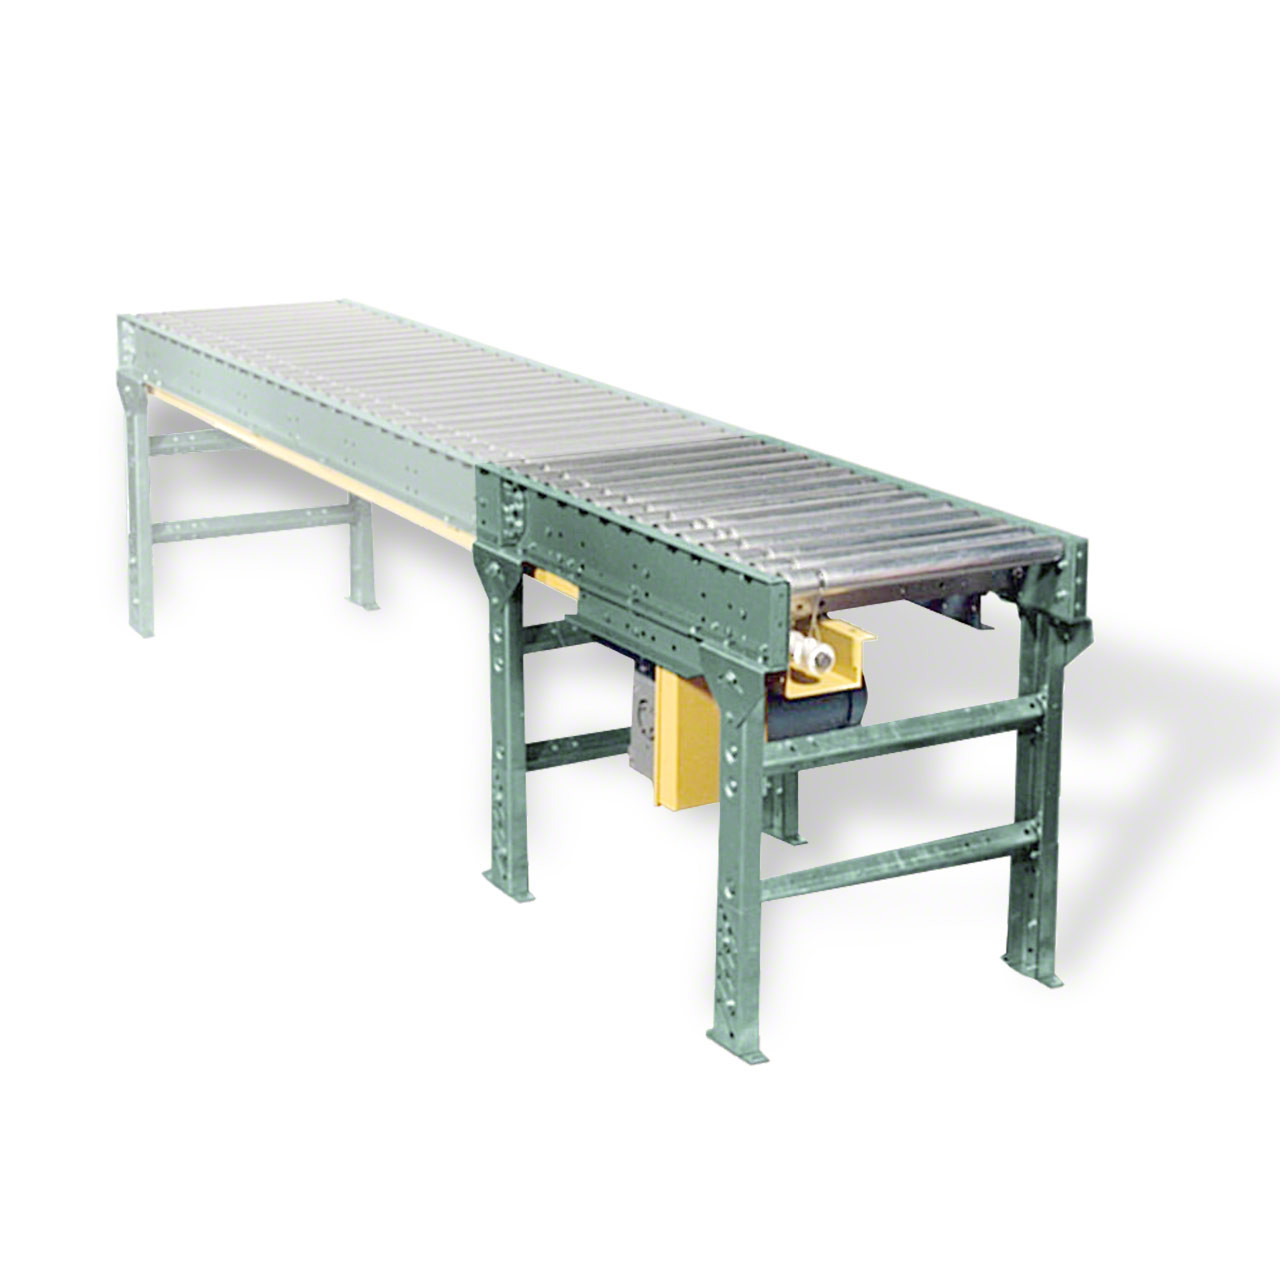 Lineshaft conveyor drives add onto straight or curved sections